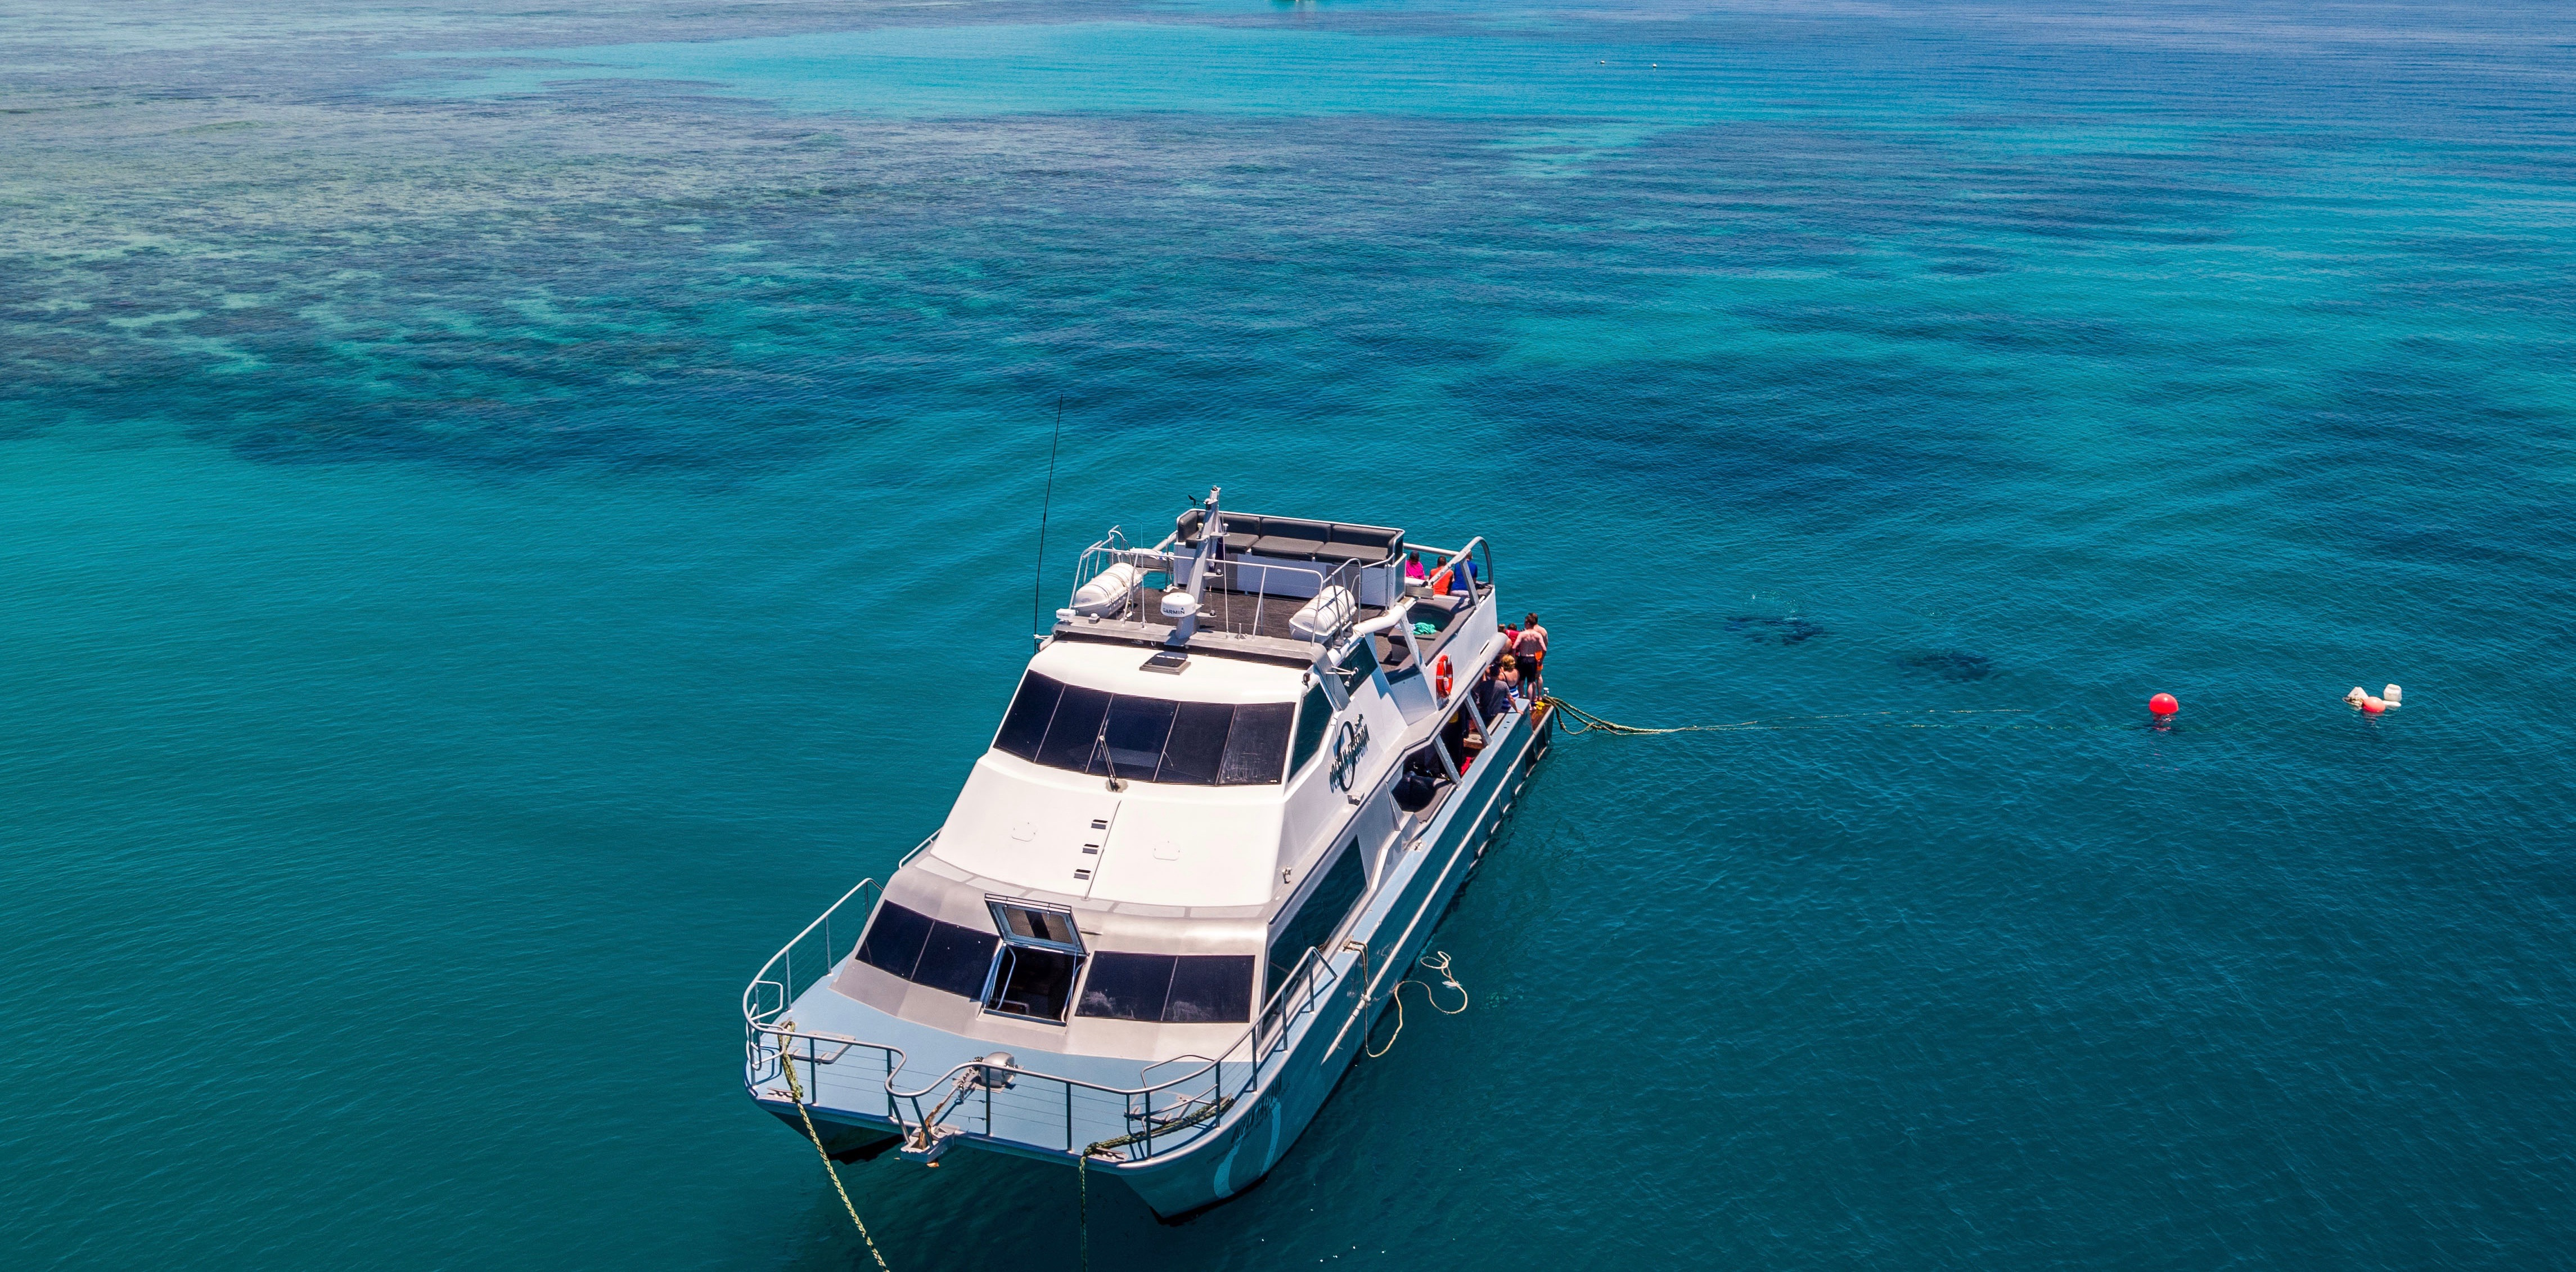 Ocean Freedom is a 20 metre luxury motor catamaran. Check in at Reef Fleet Terminal from 7.15am at Ocean Free + Ocean Freedom desk. Board from 7.30am A Finger No. 5 at the Marlin Marina, Cairns for an 8am departure – coffee, tea and Danish pastries and fresh fruit served on boarding.